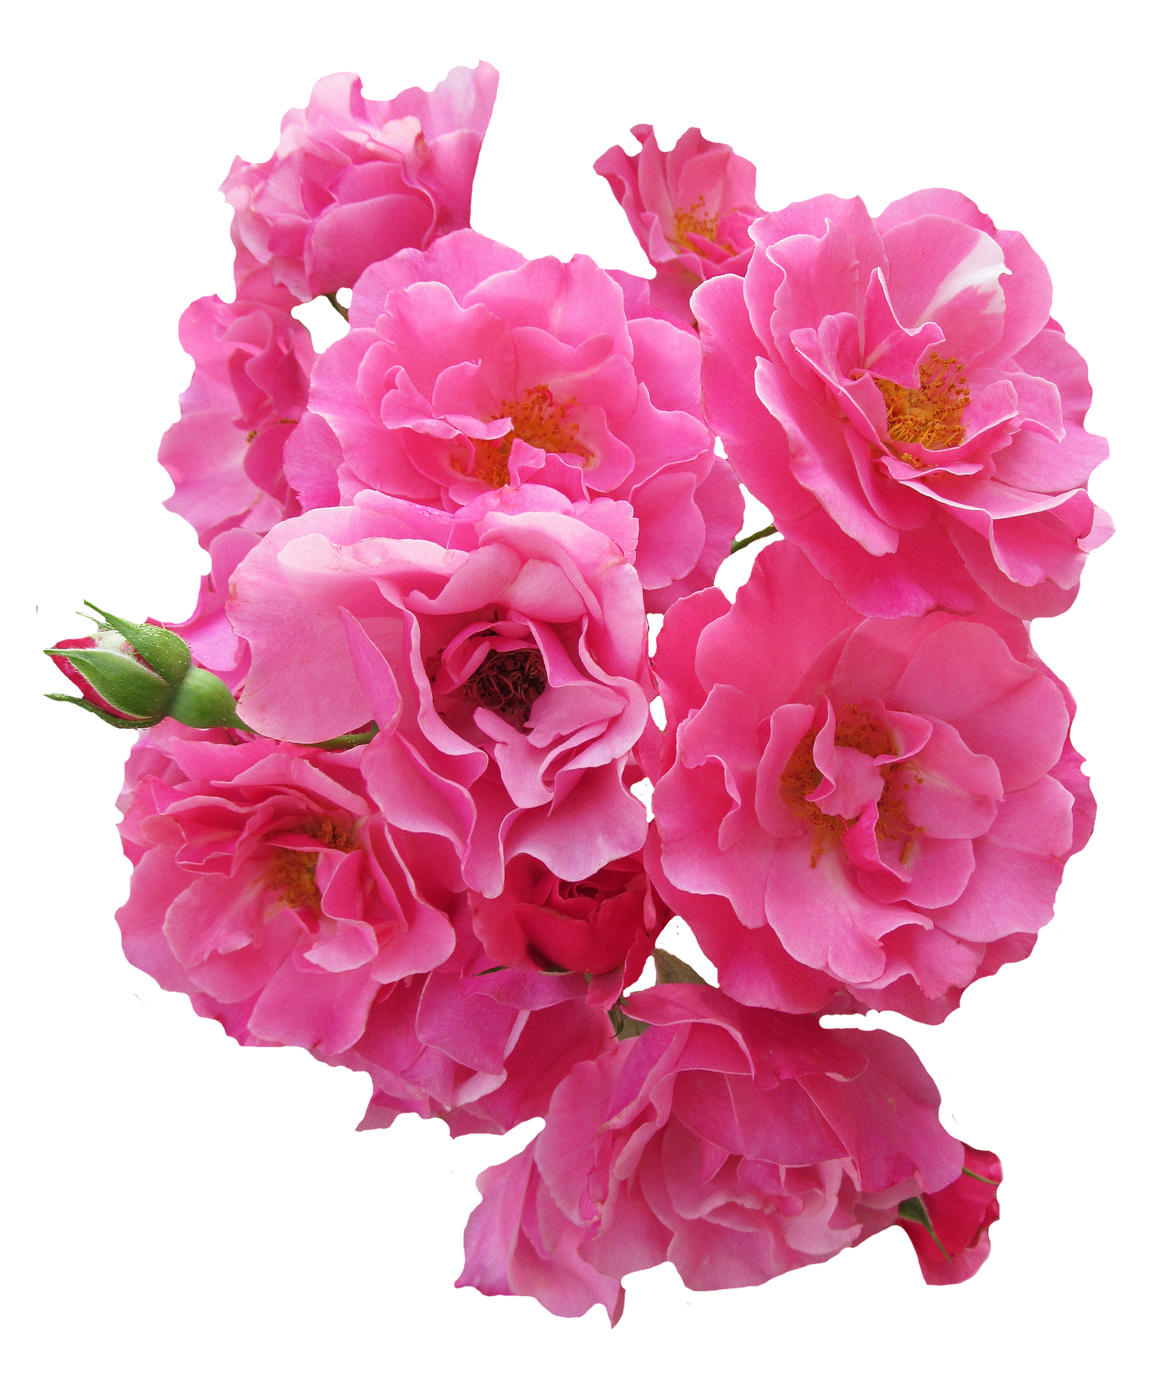 Rose clipart bunch. Pink flower png image